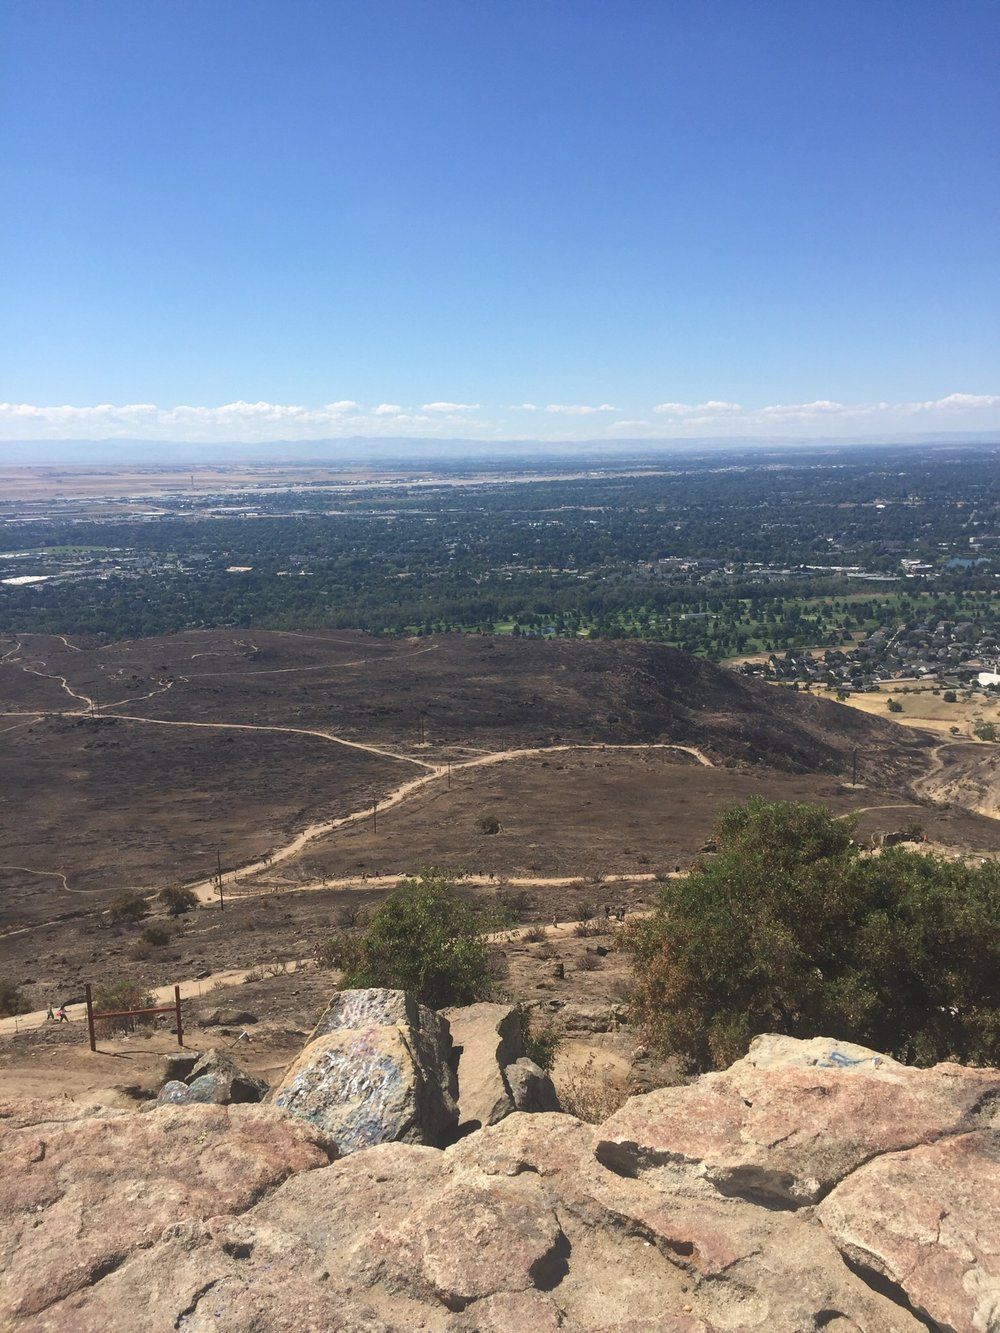 Some of the burned area from the recent fire. View from the top of Table Rock. Boise down below.